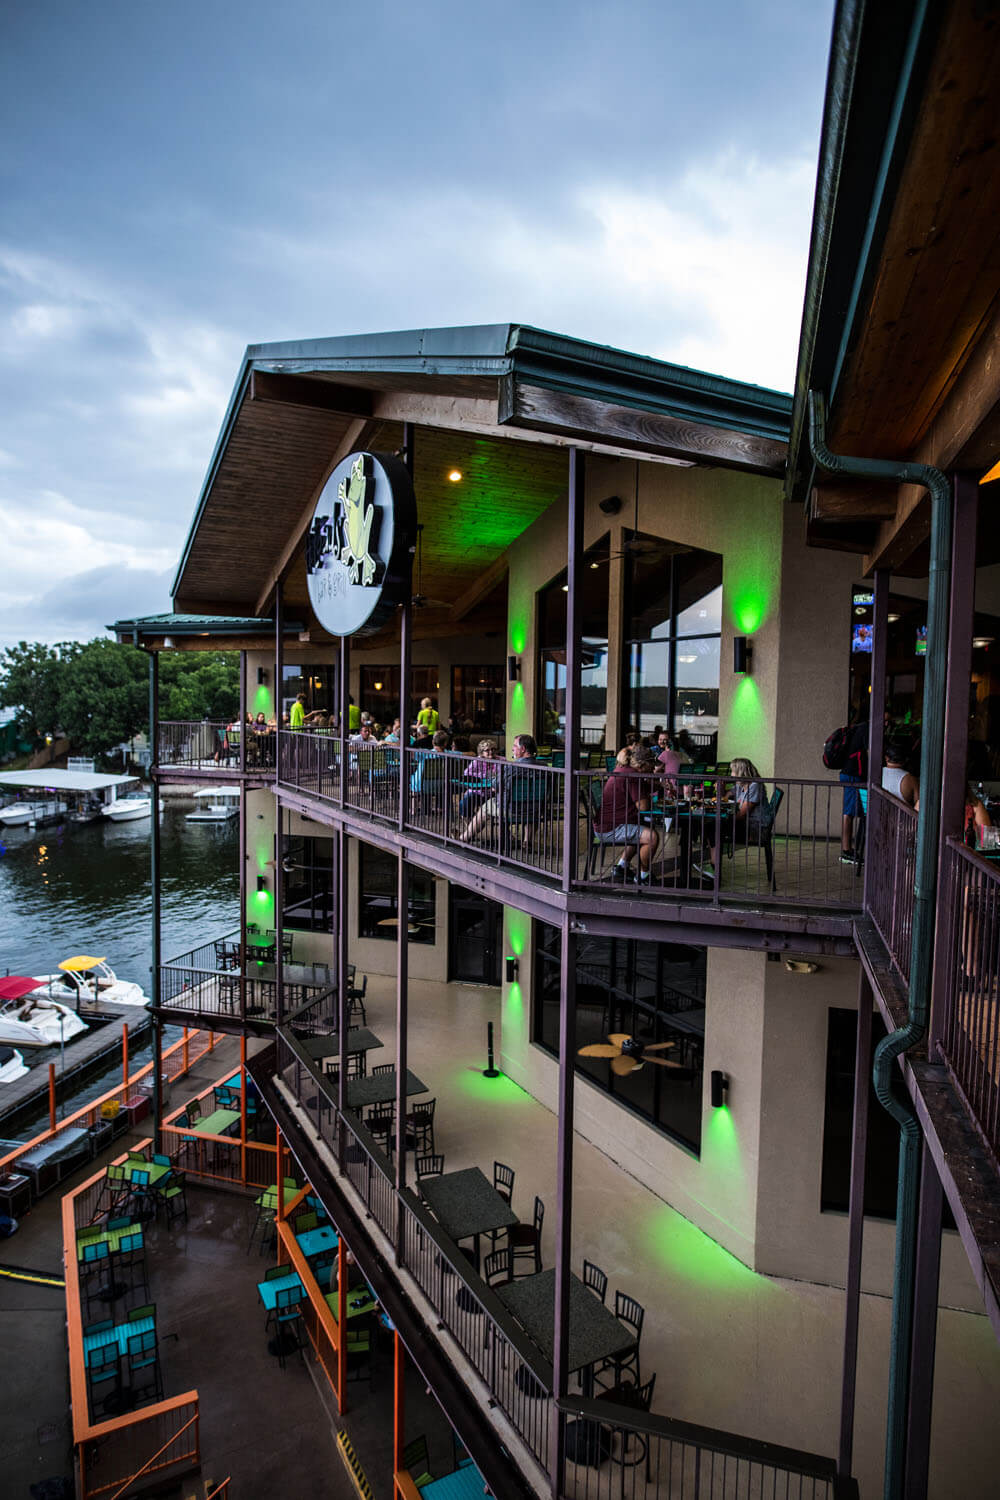 Patio seating facing the lake at H. Toad's Bar and Grill and Camden on the Lake Resort Lake of the Ozarks